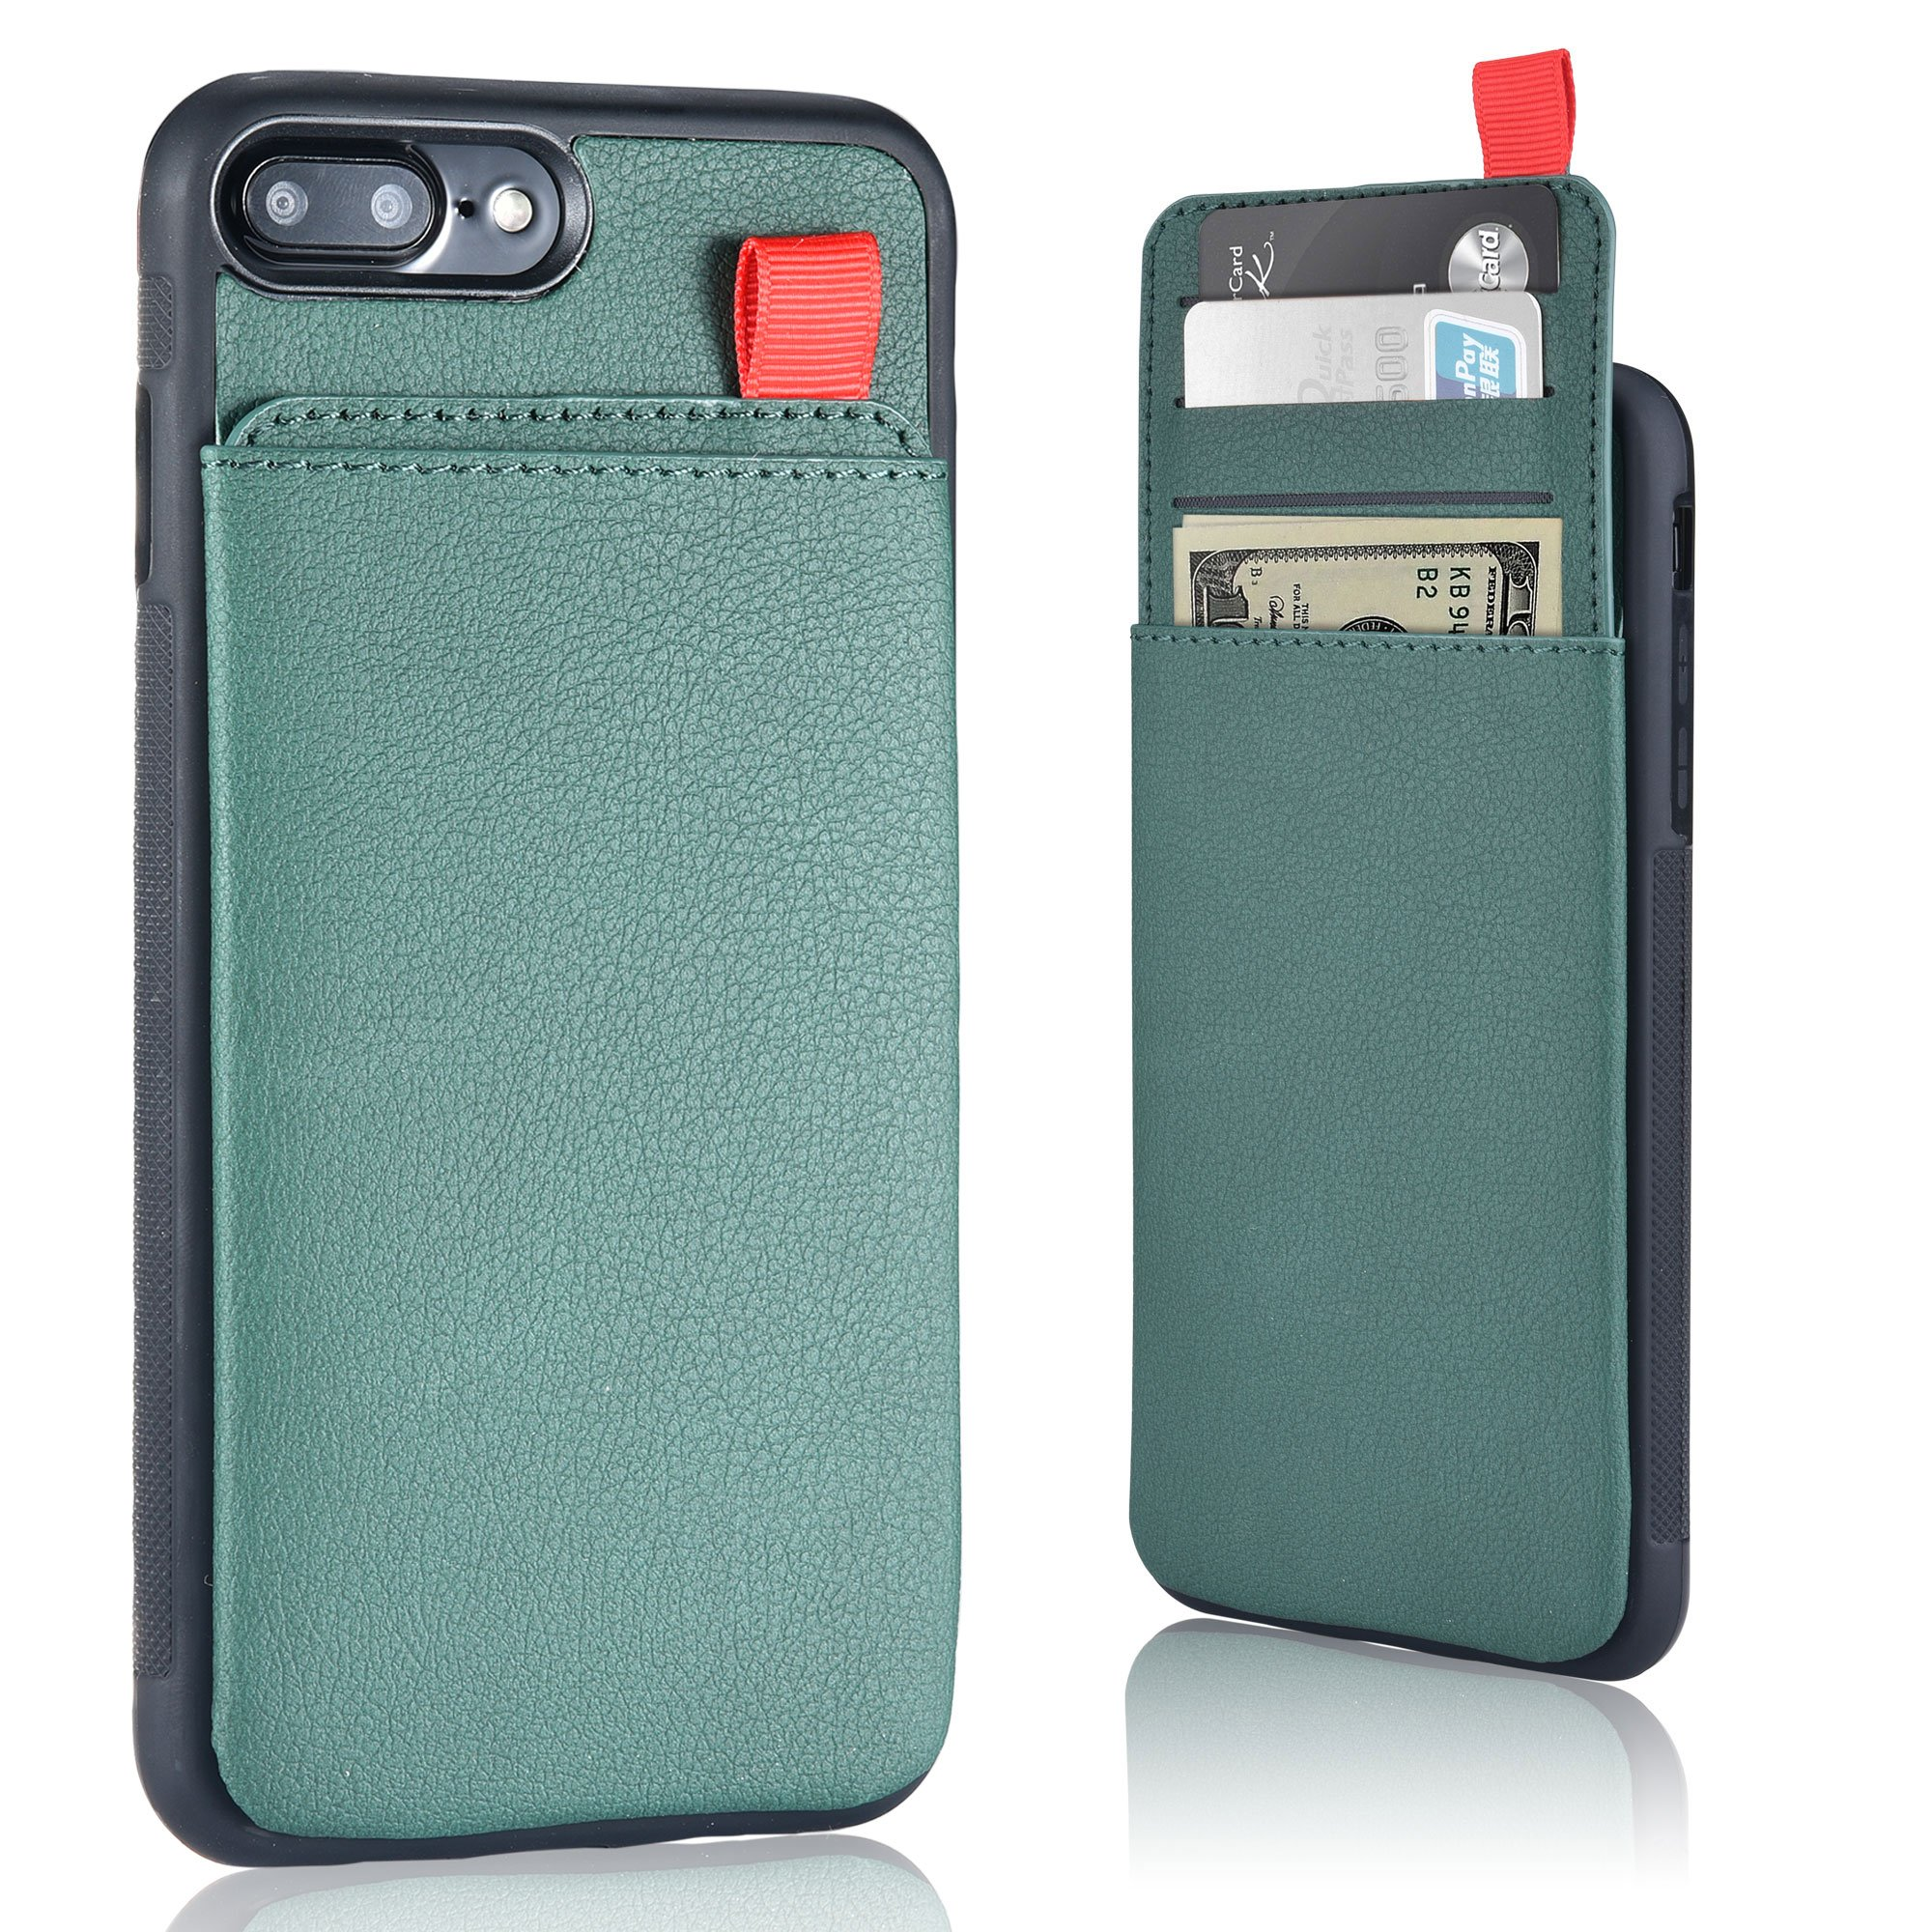 MANGATA TRITON Leather Wallet case compatible with iPhone 8 Plus, iPhone 7 Plus | Hidden Wallet Pocket, Rugged Shell | Cruelty Free Leather | Credit Card Holder, Cash Pocket, Screen Protector (Olive)